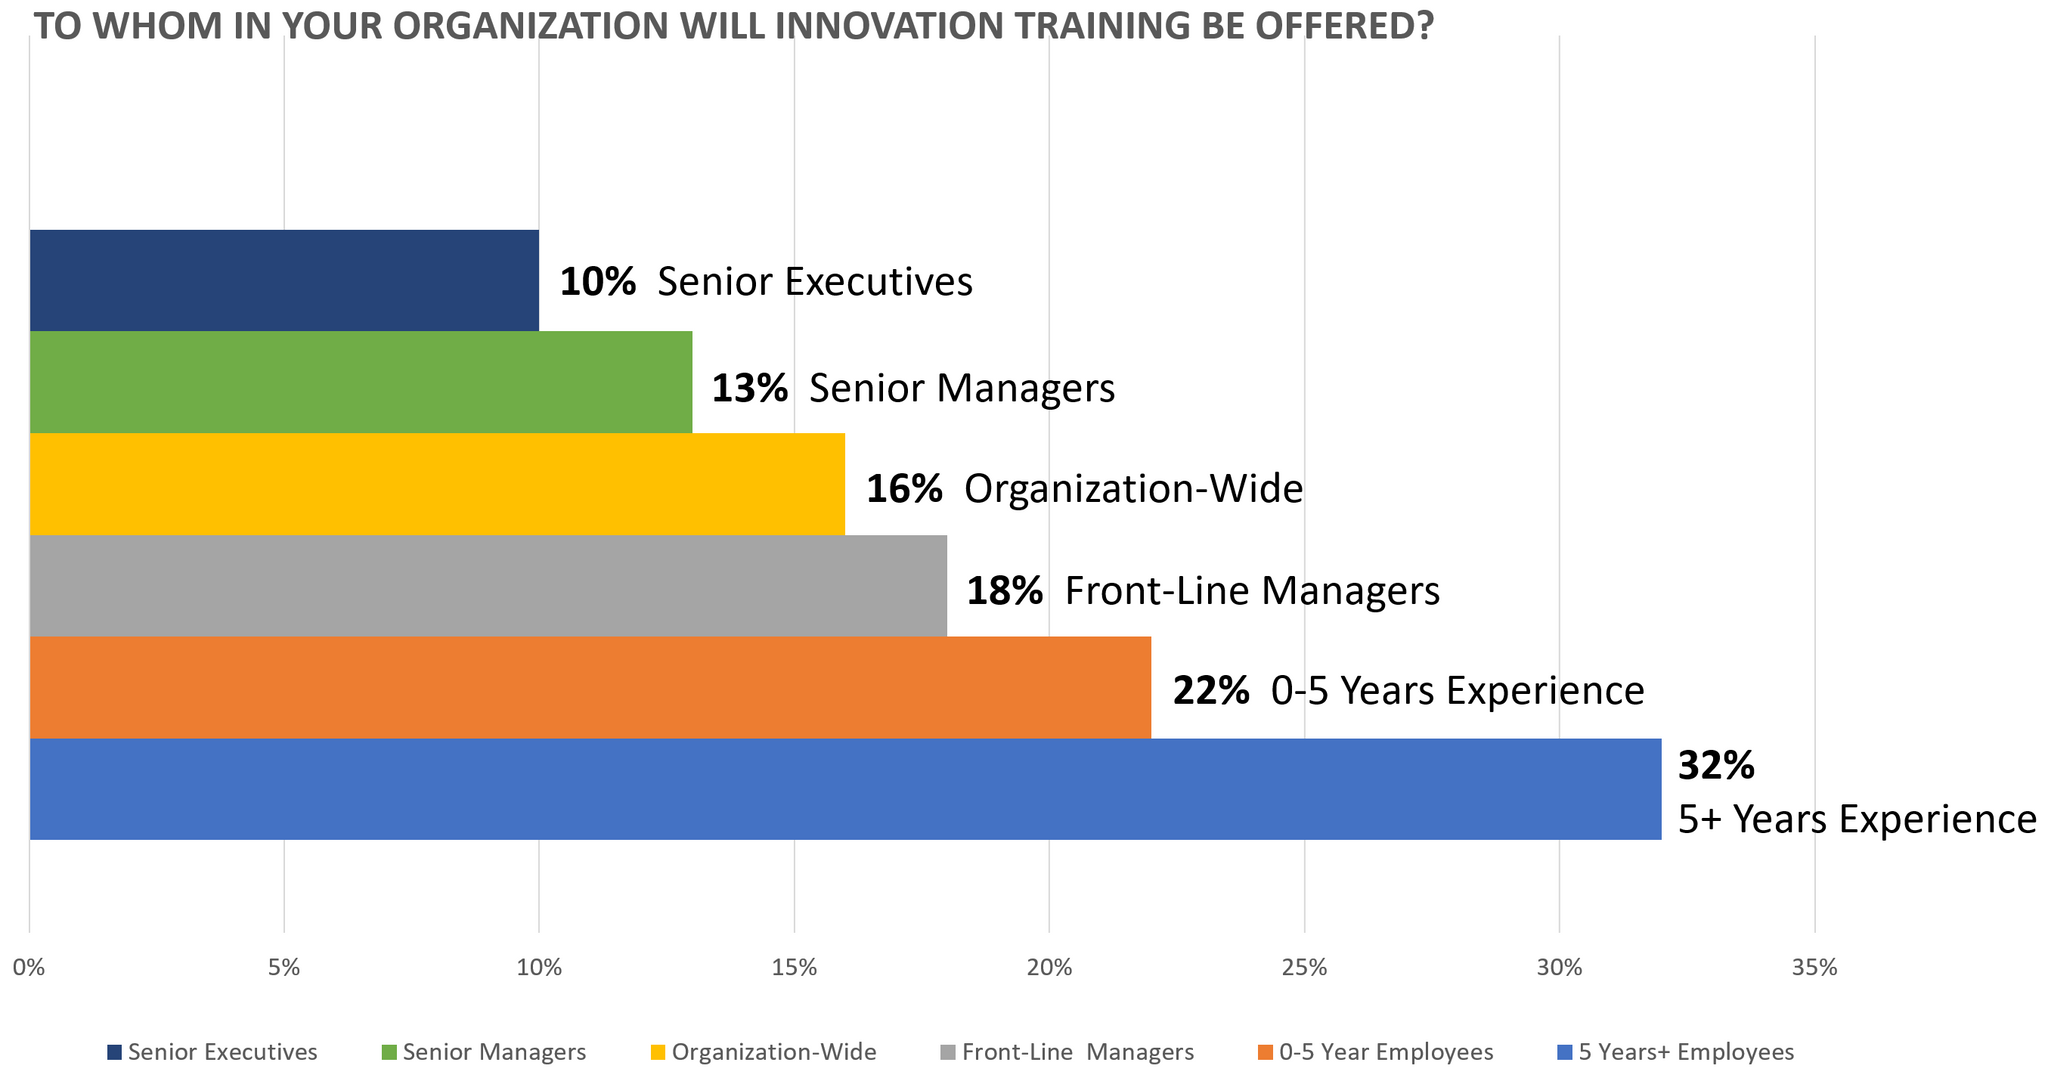 Innovation Training Plans Survey Question 2 Results SOLUTIONSpeople.com